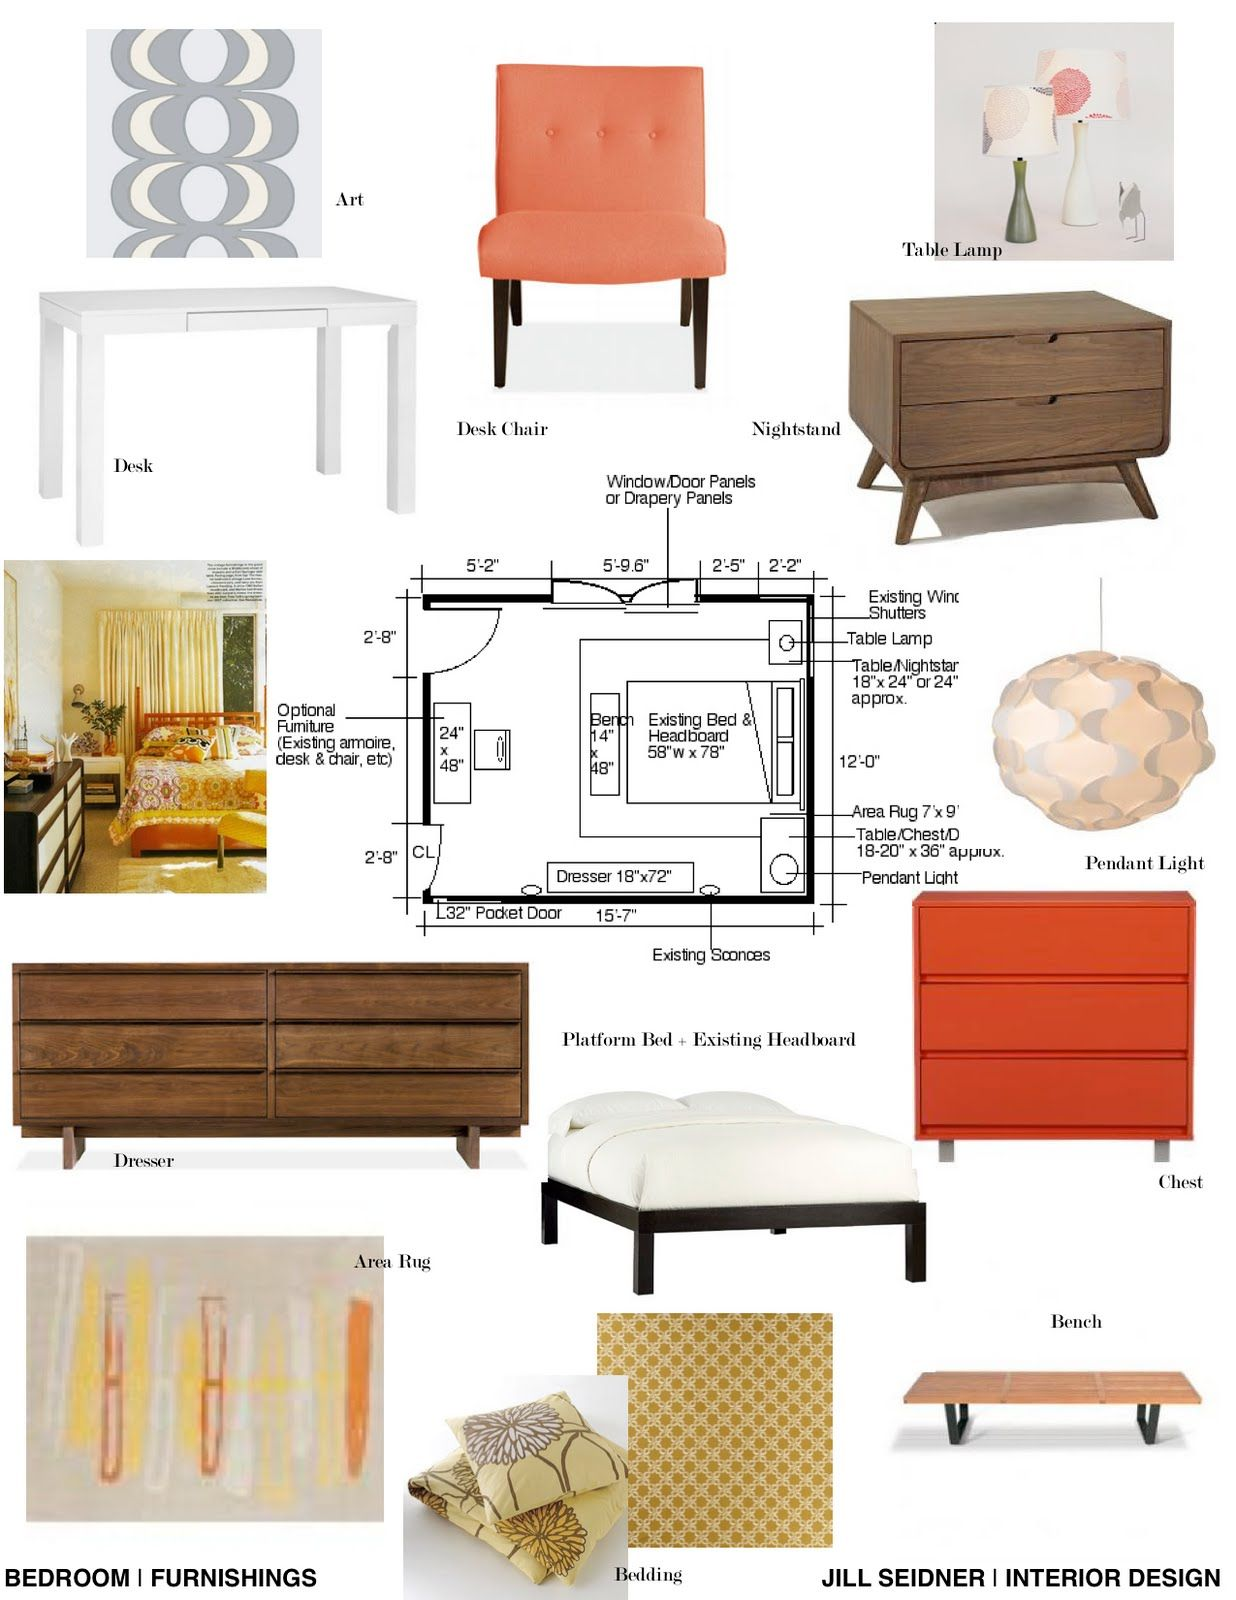 Concept Boards With Images Interior Design Boards Interior